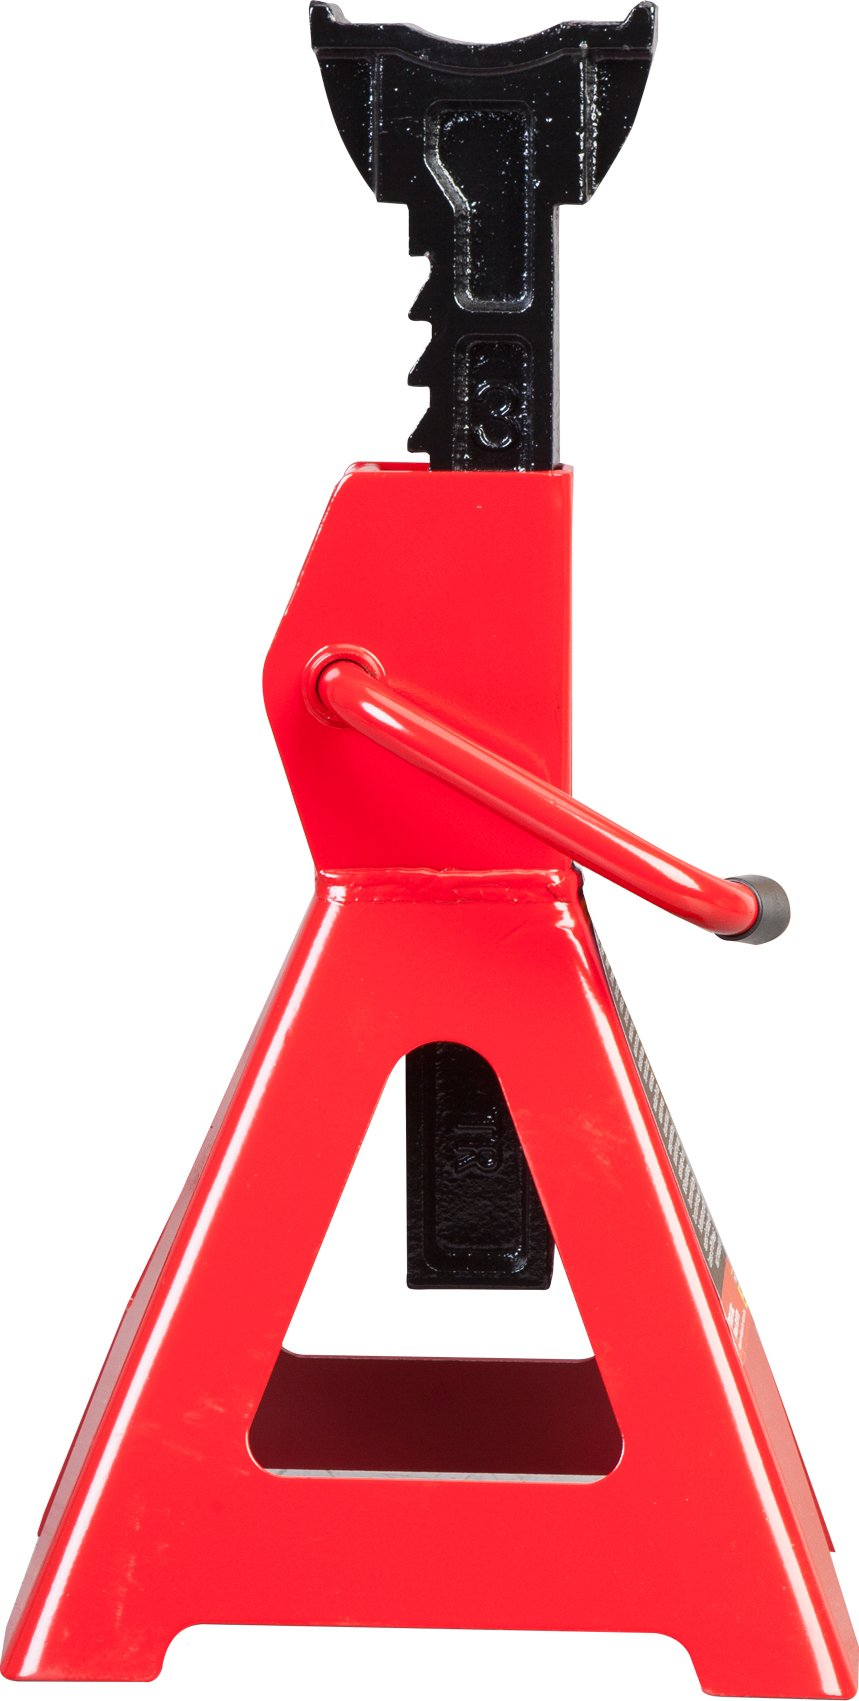 Torin Big Red Steel Jack Stand: 6 Ton Capacity, Single Jack by Torin (Image #14)